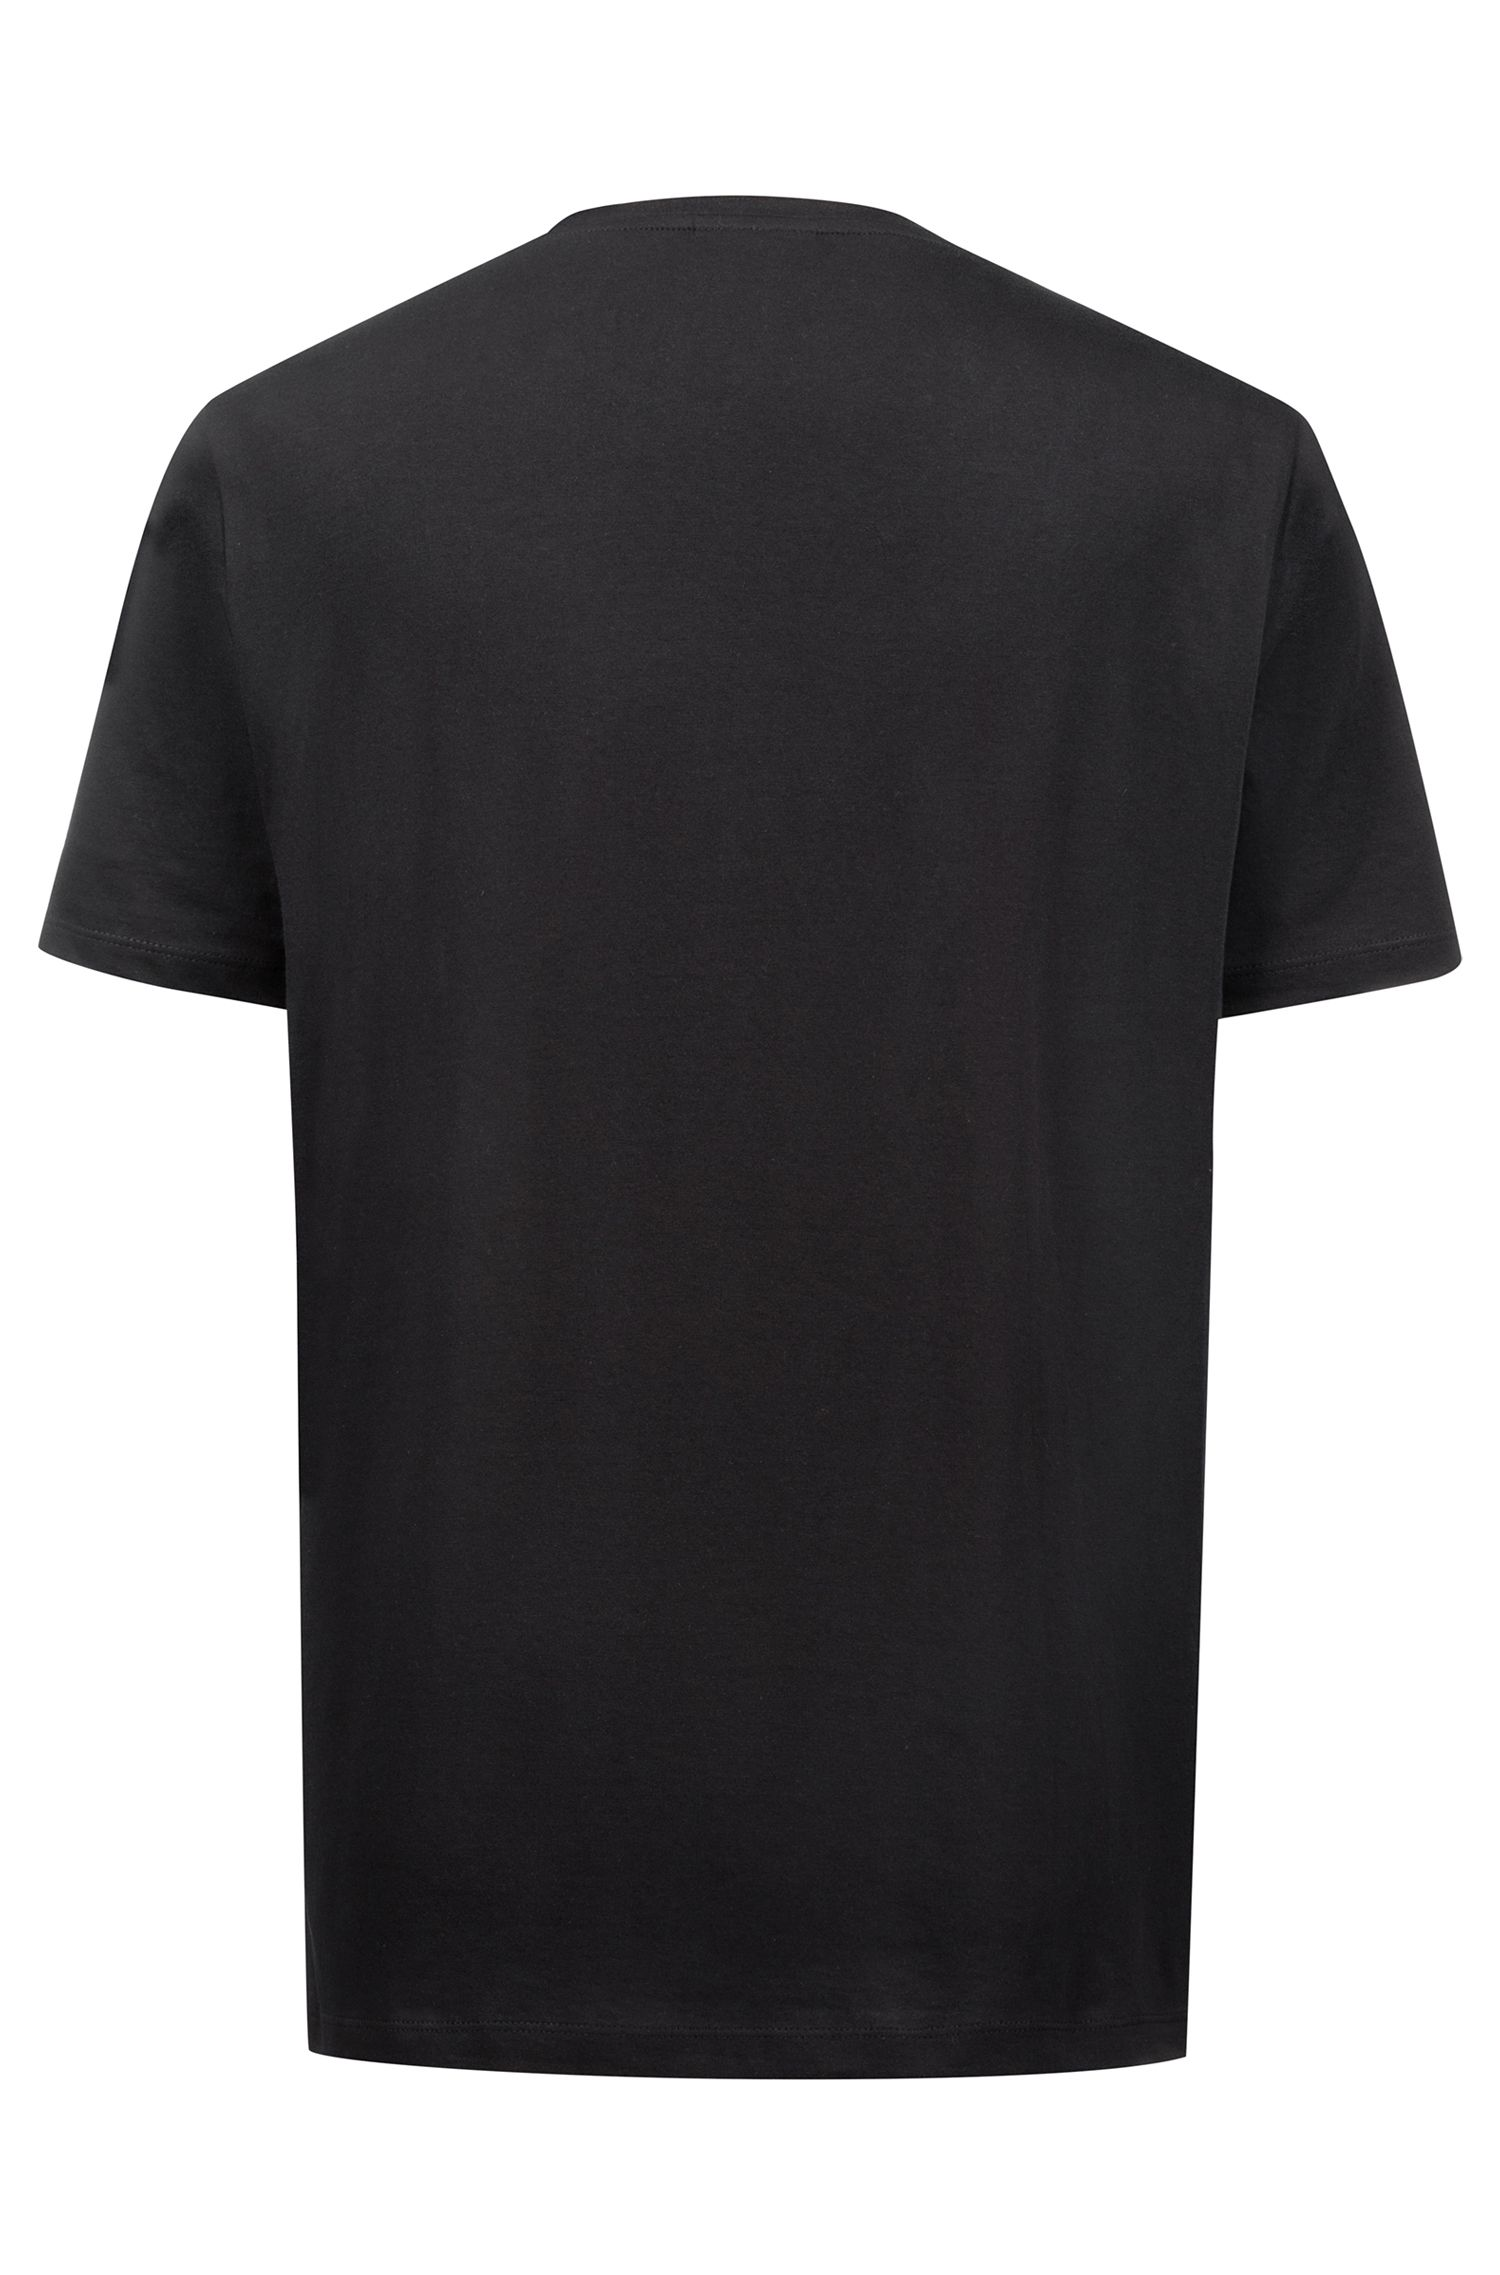 Relaxed-fit logo T-shirt in cotton jersey, Black